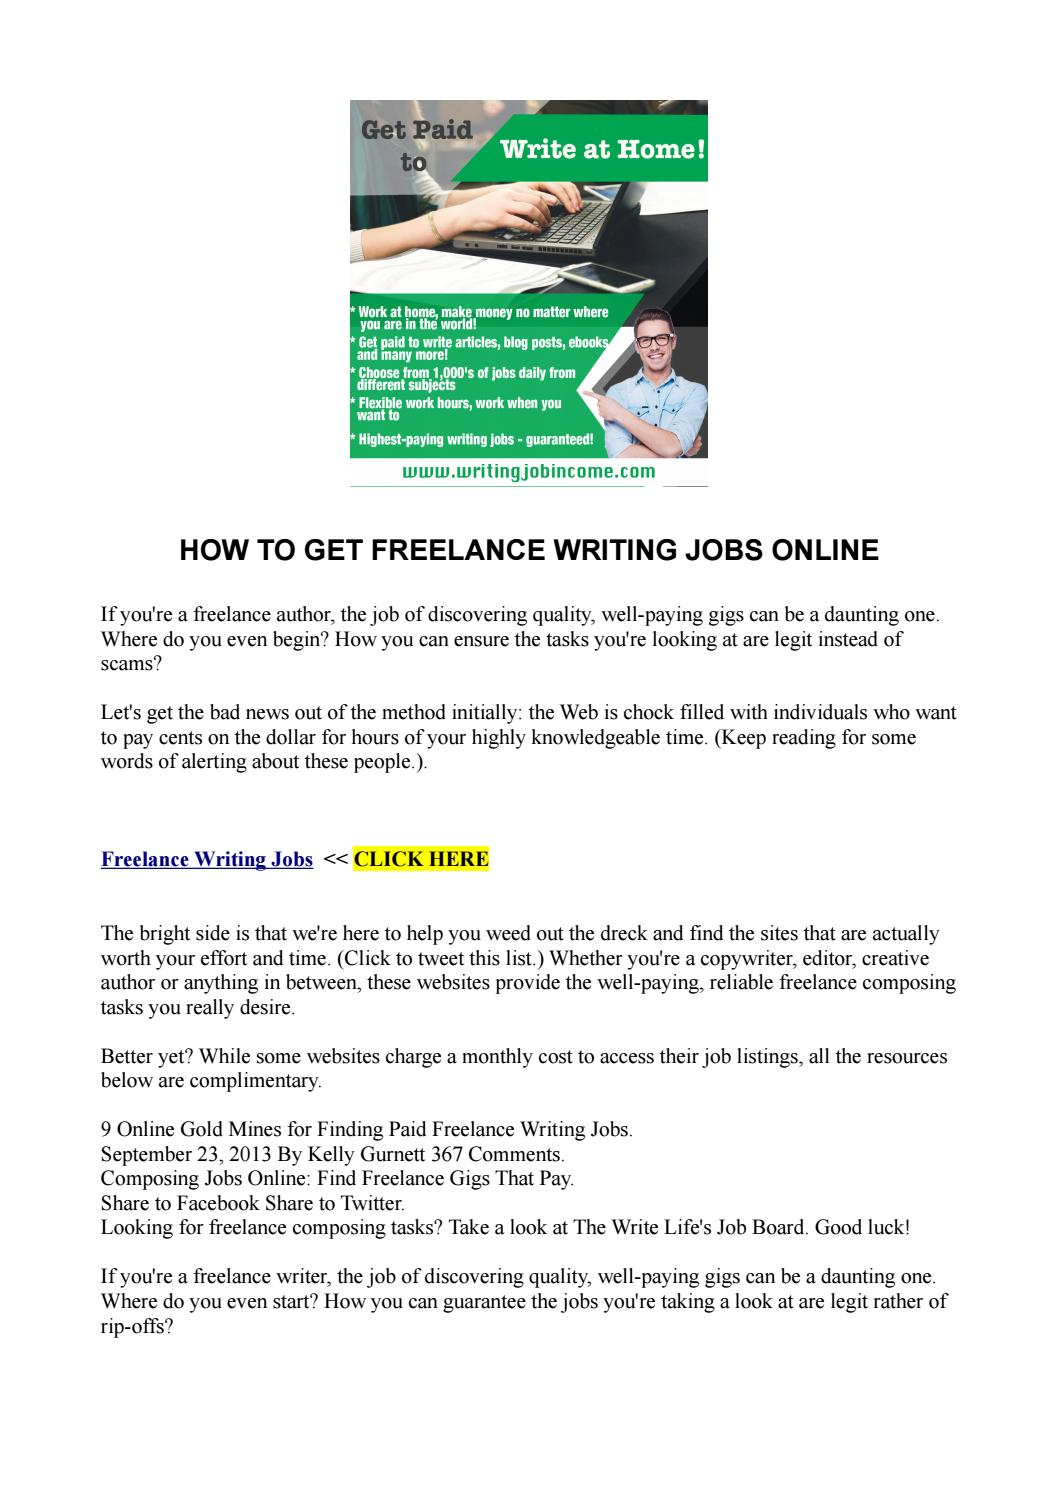 highest paid writing jobs highest paying jobs openings business  how to get lance writing jobs online writingjobincome how to get lance writing jobs online writingjobincome